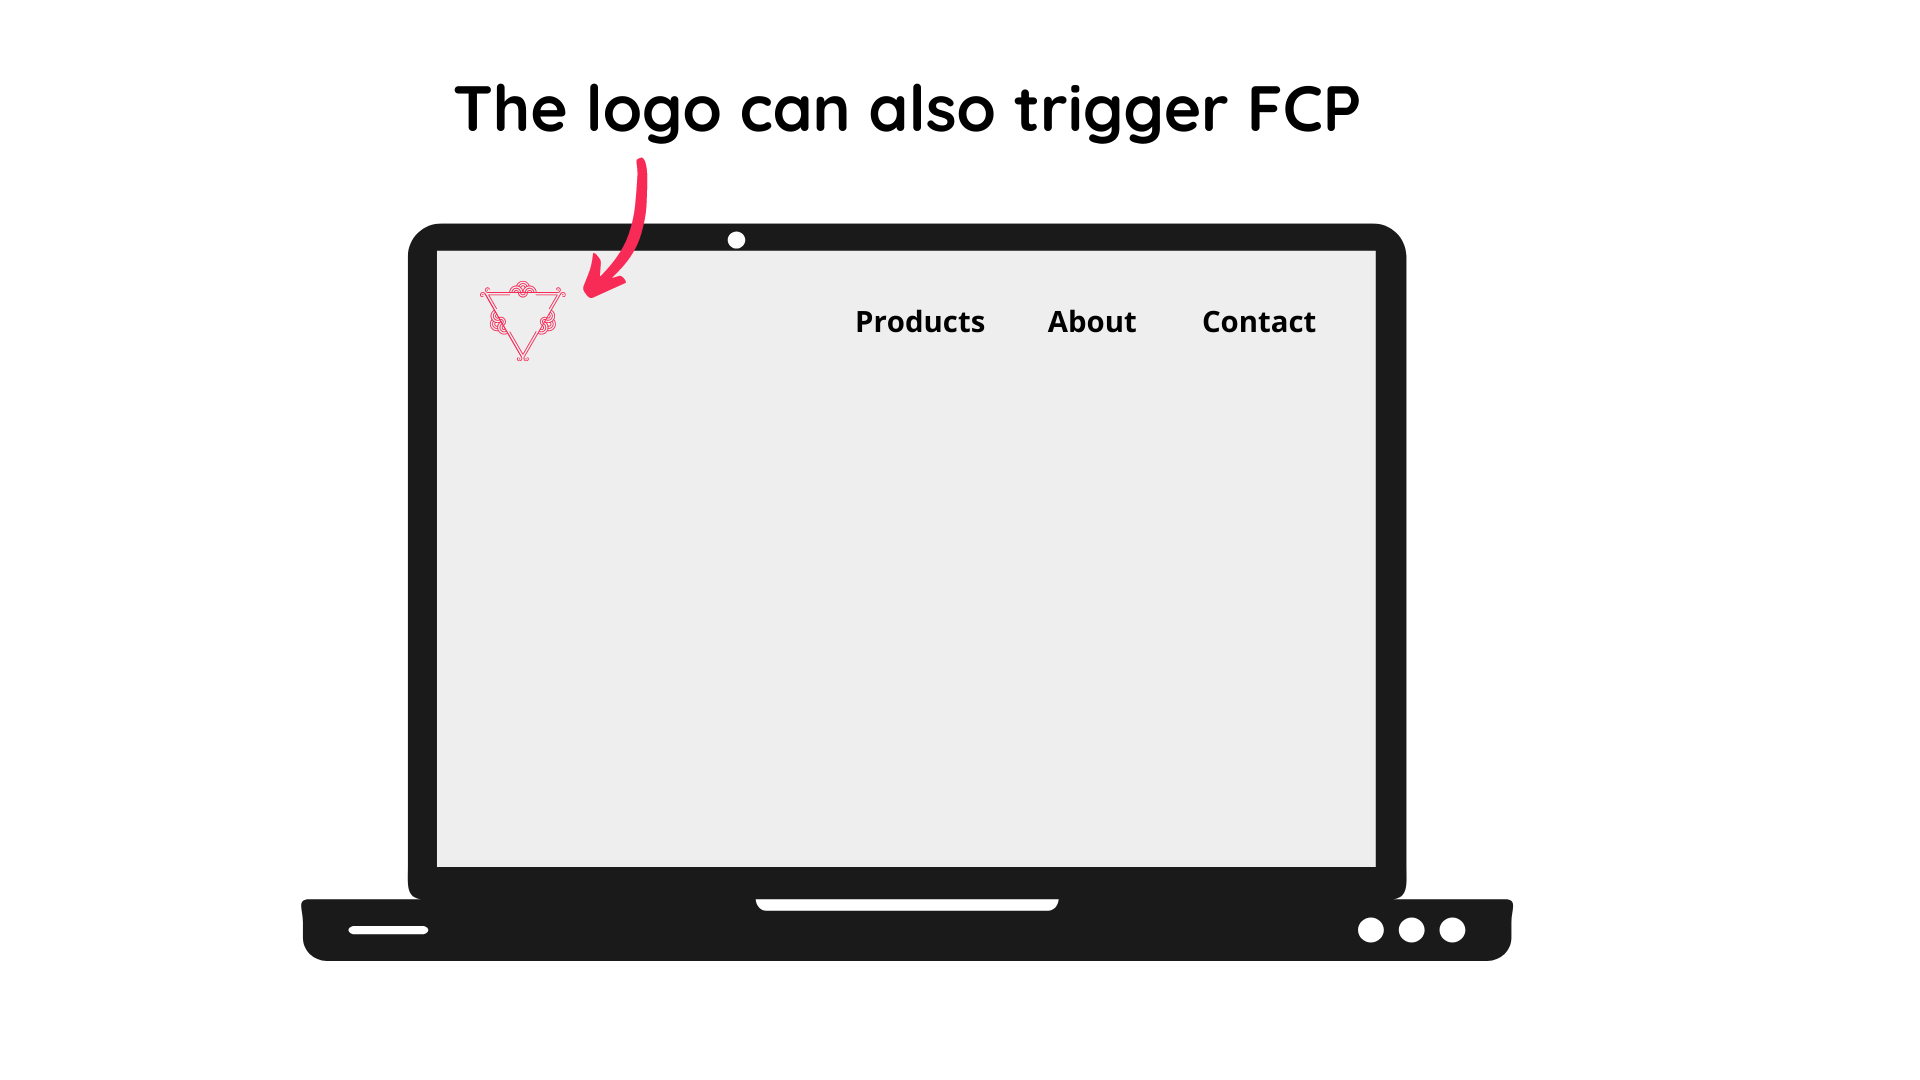 Logo triggers FCP